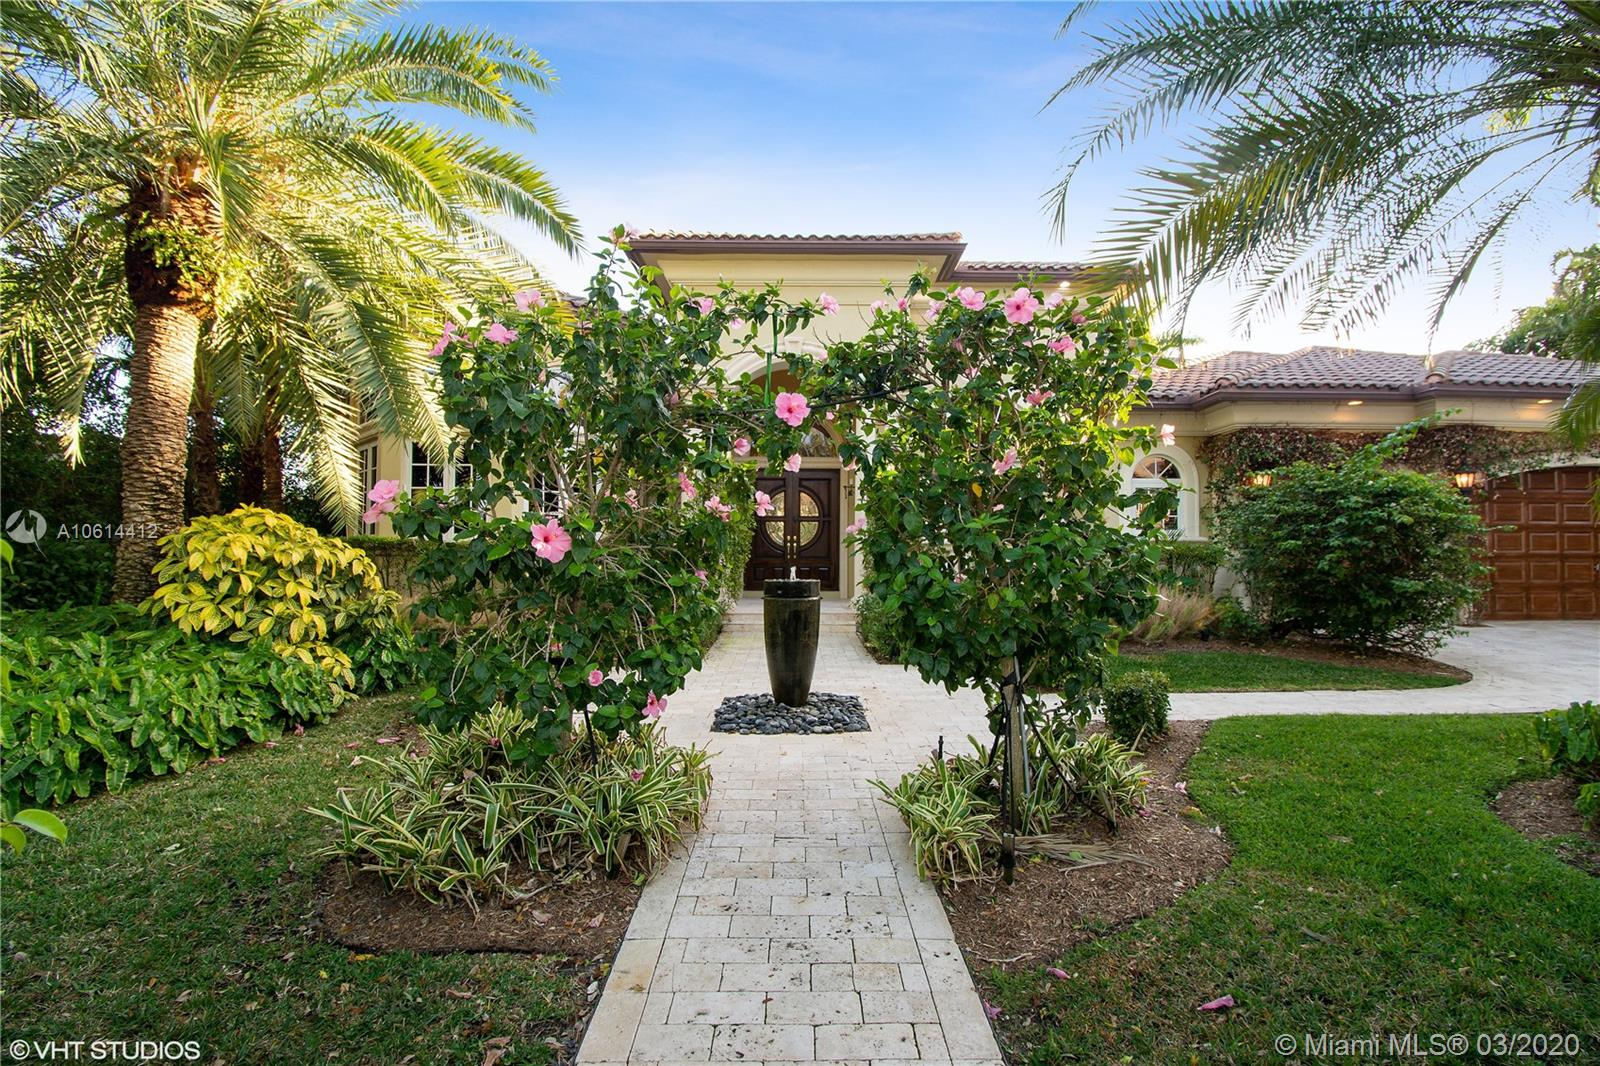 Back on the market!  Pretty home, smart layout and a rare one-story. Manicured hedges, Royal and Date palms... Built to highest quality and emanates Palm Beach elegance and warmth. Built and designer decorated with attention to every detail. 4 Bdrms plus an office. Built in 2002. Walls of Impact Glass invite you to the beautiful outdoor living area, extensive covered areas, pool w/heated spa, wide (120') canal and ICW views. Master suite and handsome office to one side and 3-guest bedrooms to the right of the home. 13' and 15' ceilings, finest quality finishes, millwork, crown molding and craftsmanship. Saturnia marble floors throughout, propane gas, Thermador appliances. Third from the point and desirable South exposure. 100' dock accommodates up to 80' boat. Gently lived in.